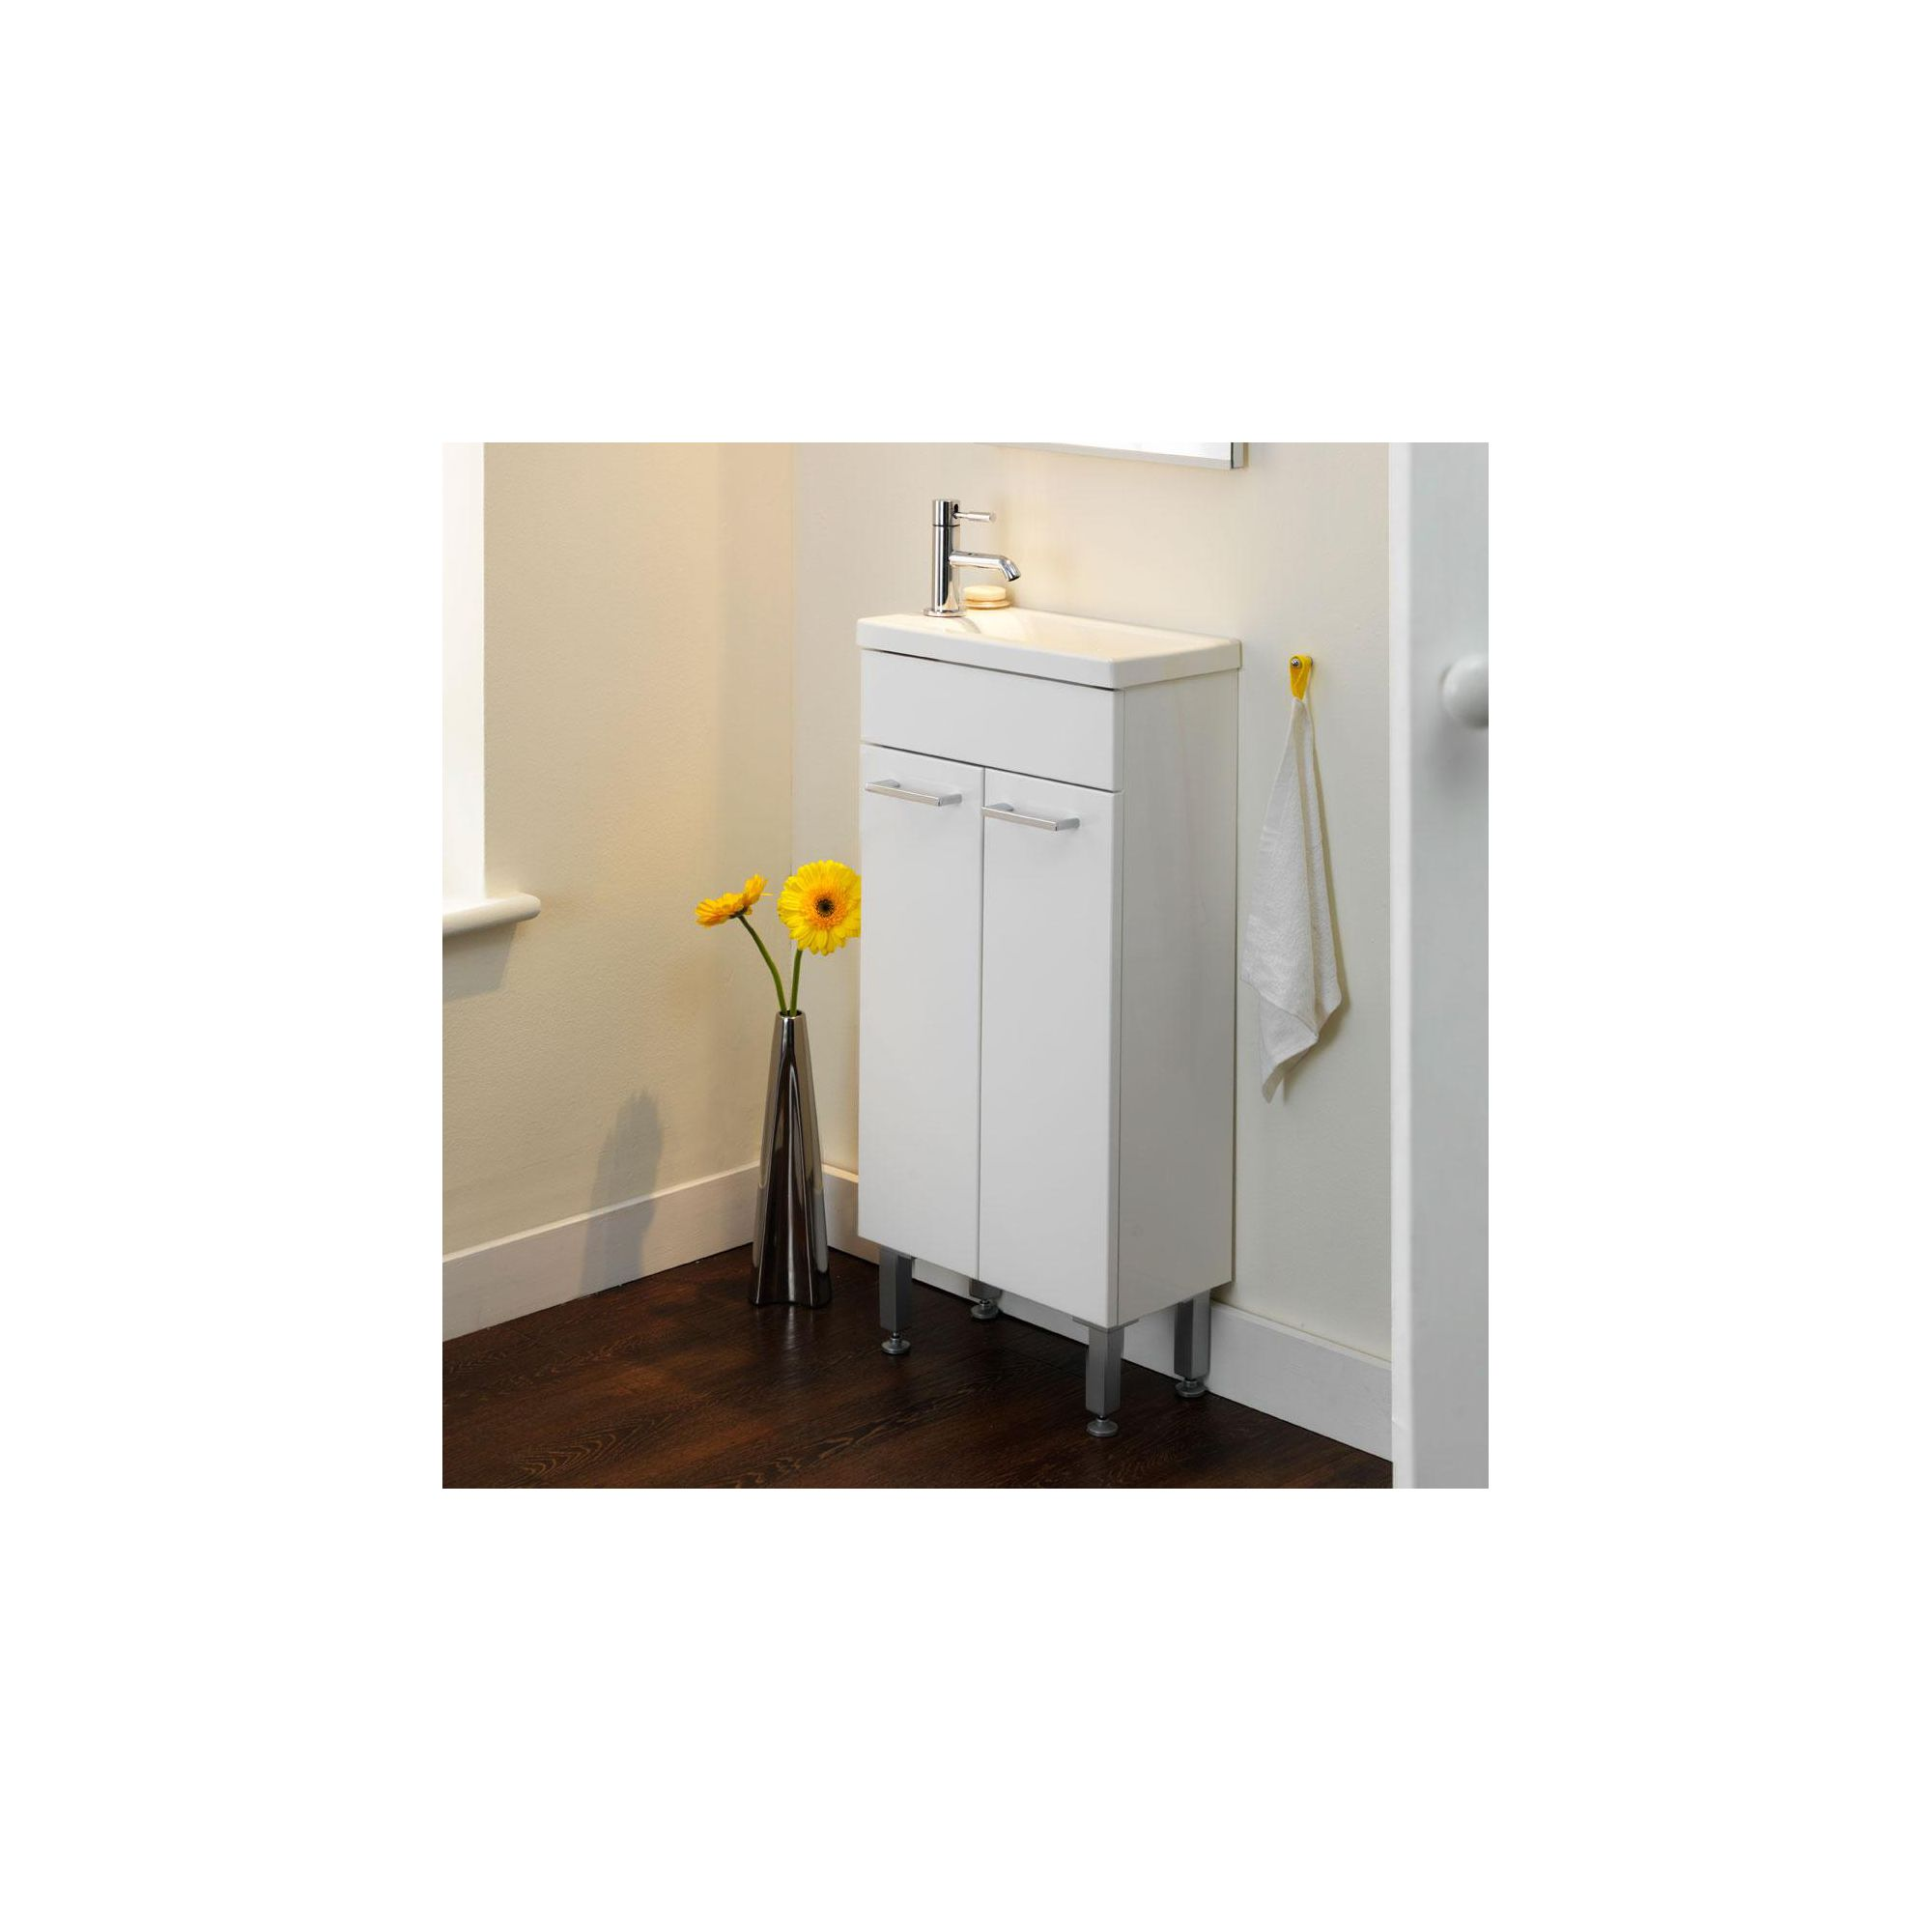 Duchy Trevail White 2 Door Vanity Unit and Basin 390mm Wide x 213mm Deep including Mirror and Cornice